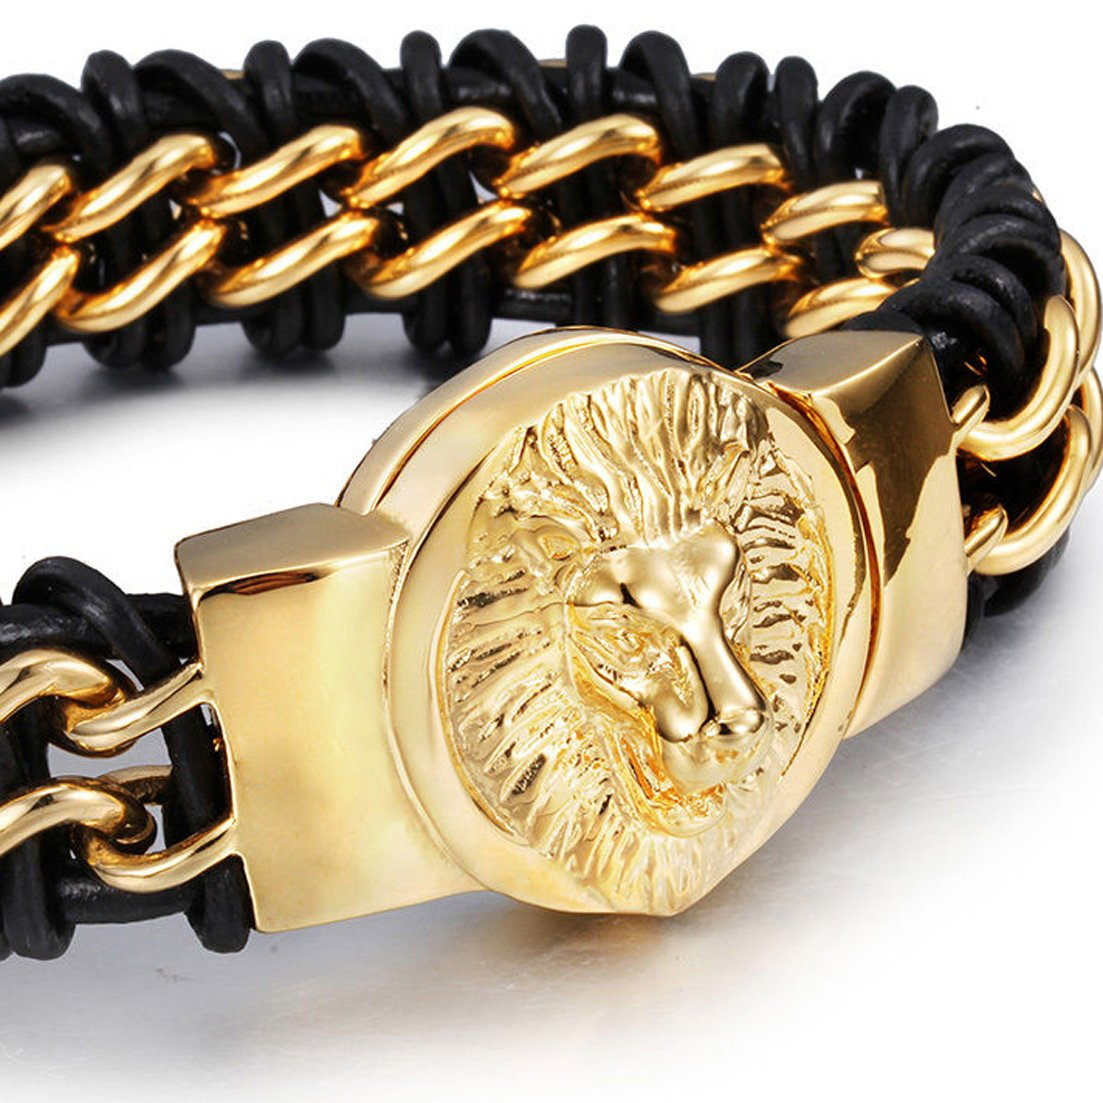 "Gold Tone Lion and Black Leather Wrap Jewelry Kingdom 1 Stainless Steel Lion Head Bracelet Link Bangle Cuff Black Braided Genuine Leather Wrap Wristband for Men Boys Biker Heavy and Big Size 8.6/"" ."